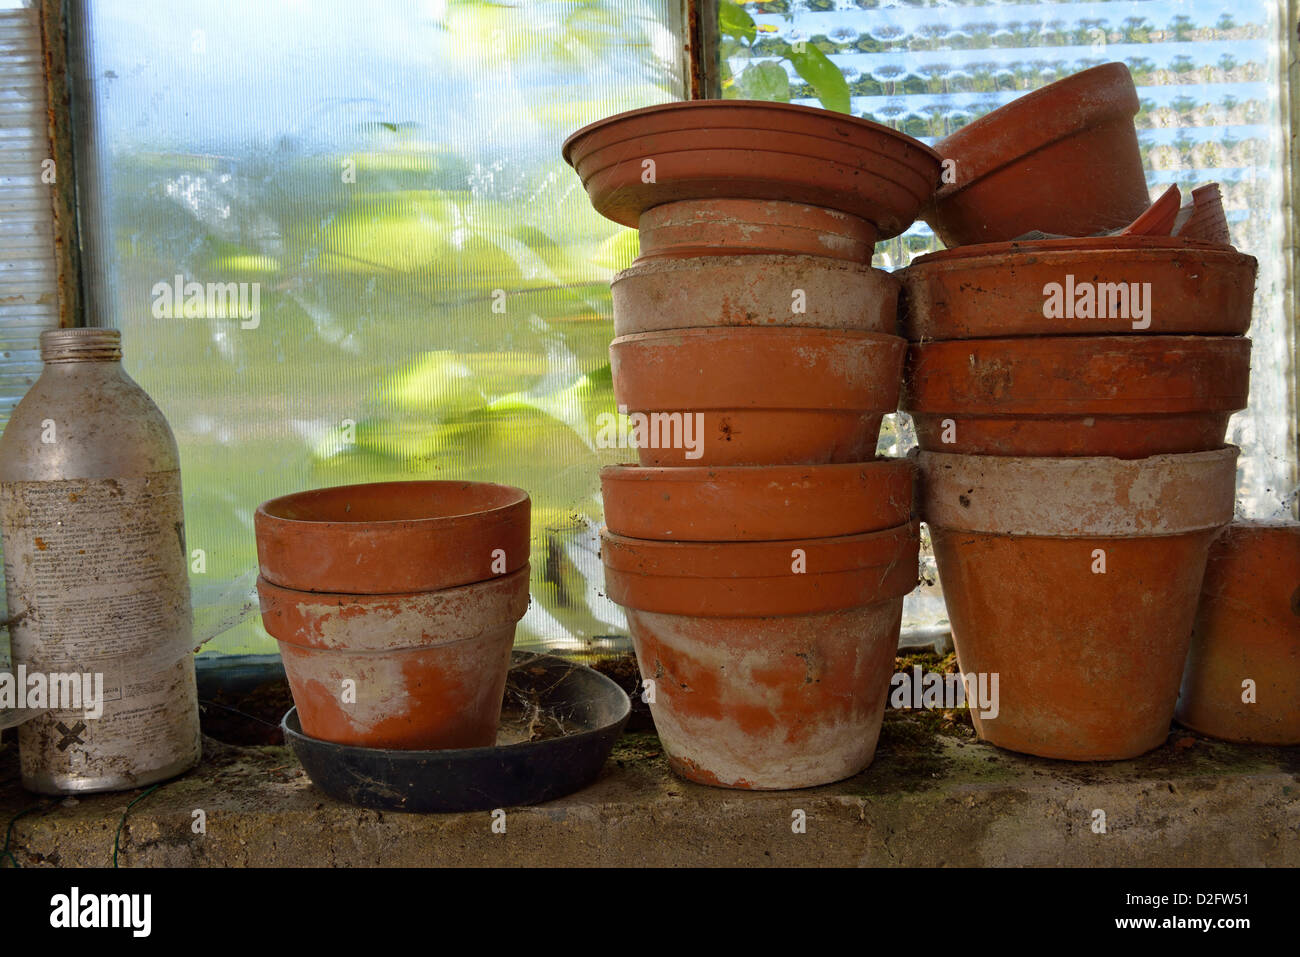 Stacked empty old plant pots by window in a garden shed - Stock Image